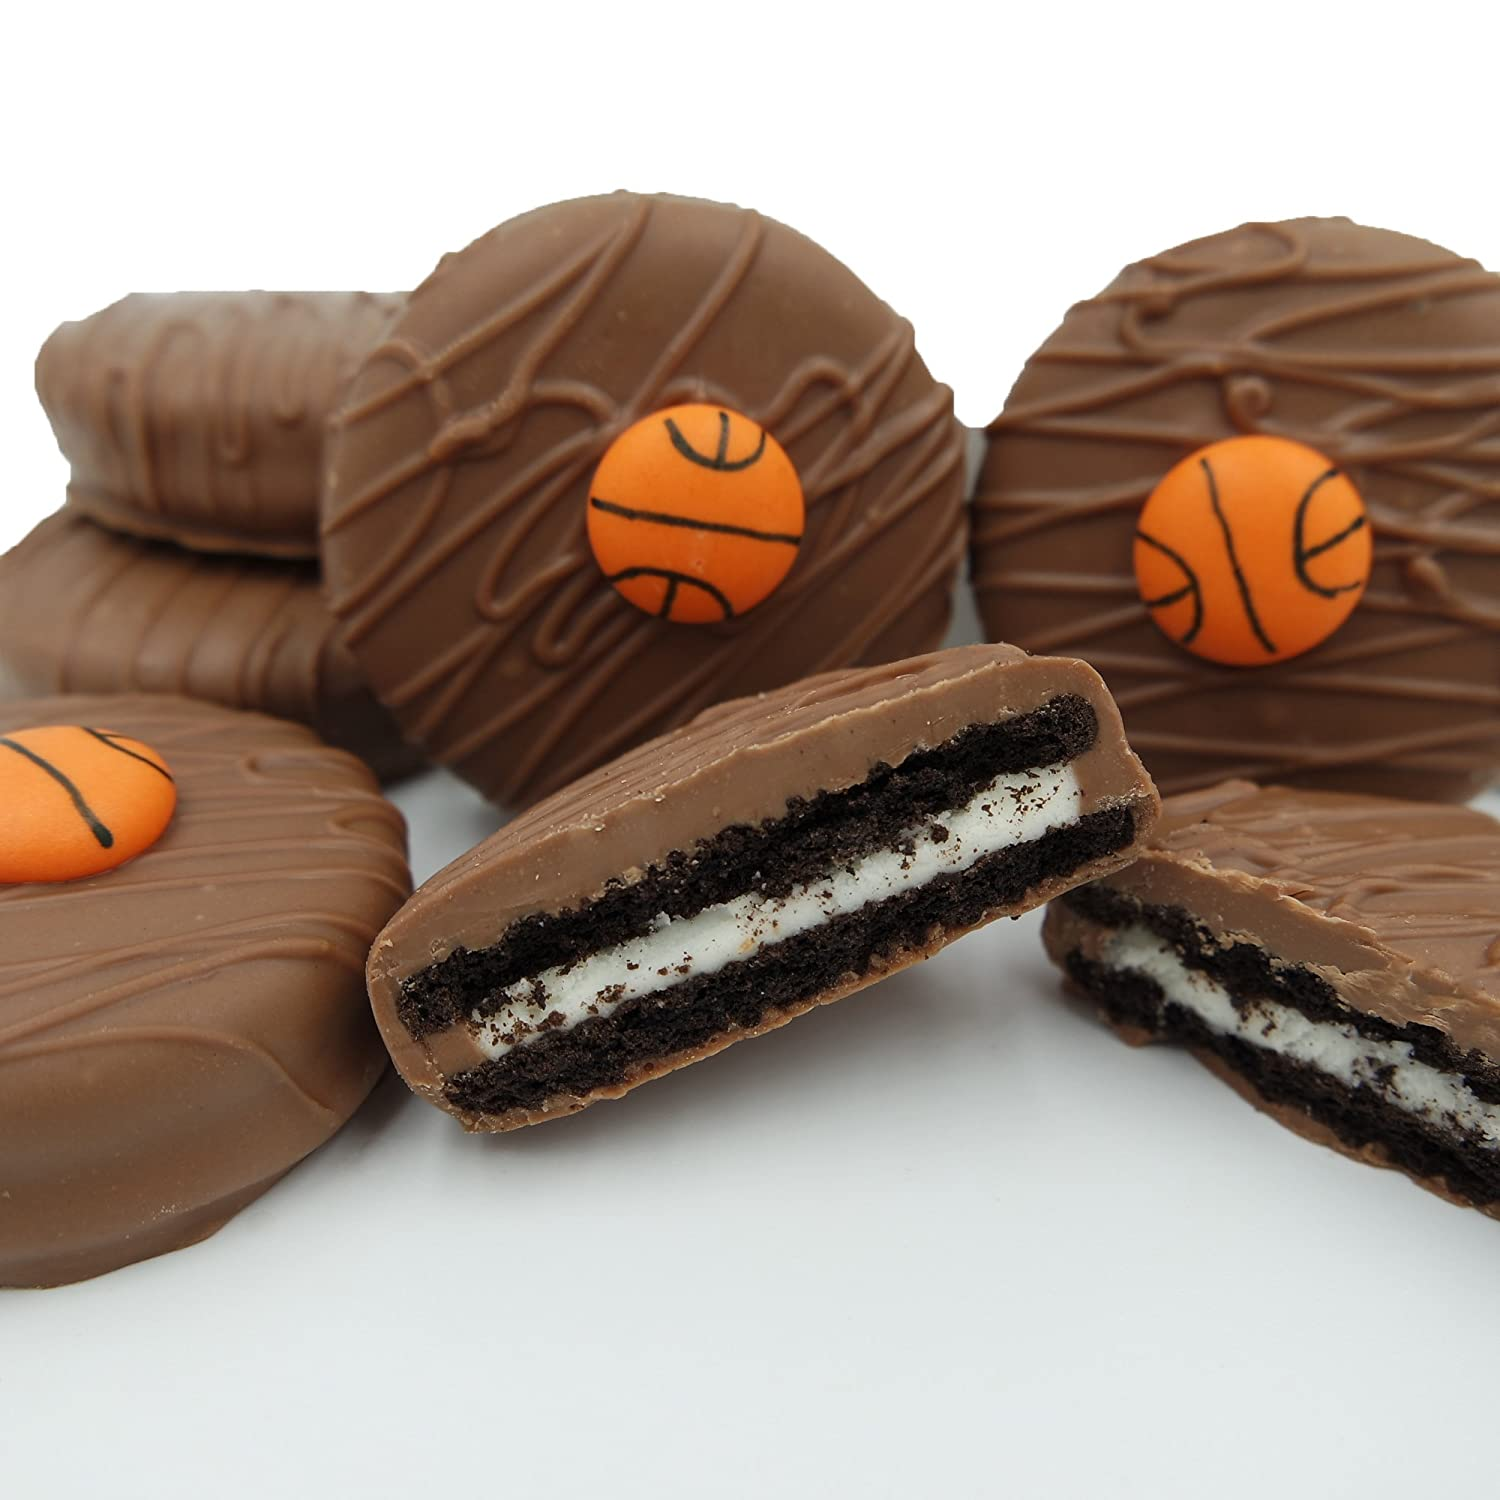 Philadelphia Candies Milk Chocolate Covered OREO Cookies, Basketball Gift Net Wt 8 oz